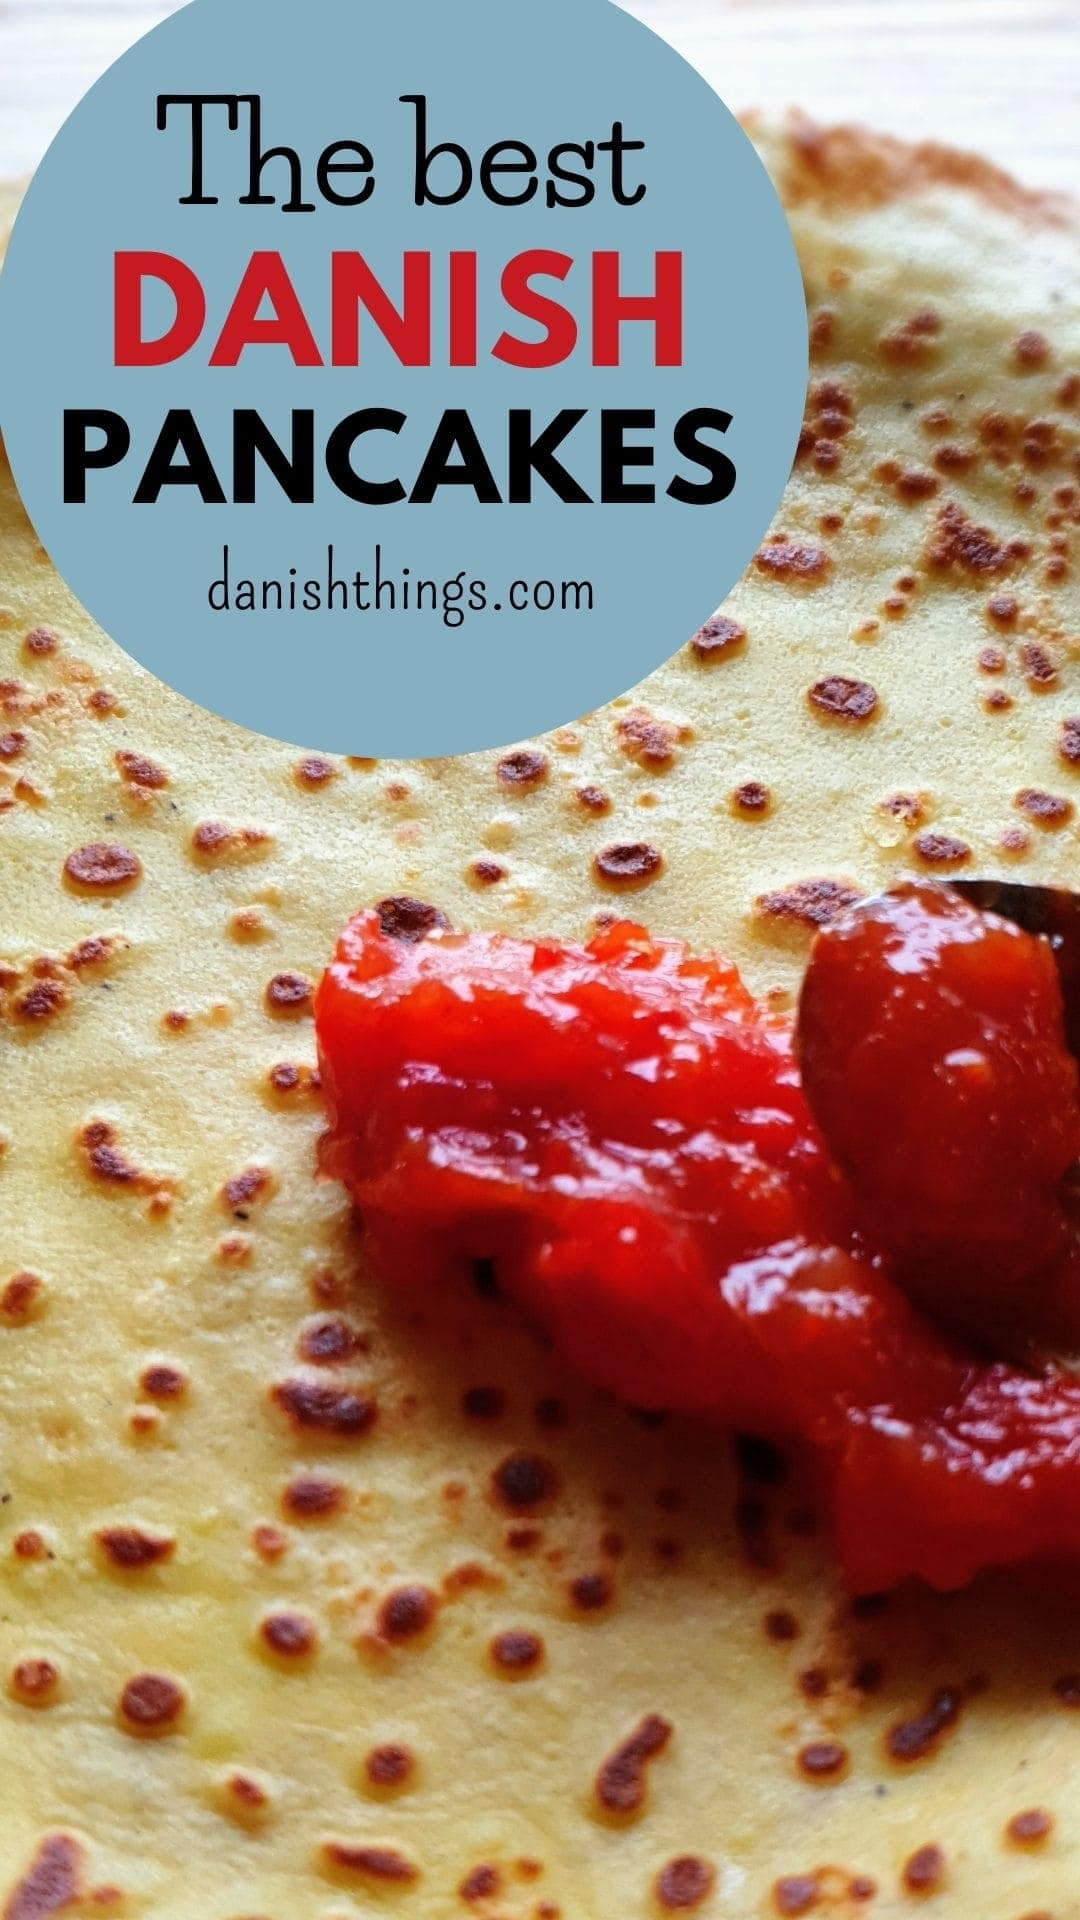 The best Danish pancakes. Pancake day - Pancake Tuesday - holiday - or an ordinary Sunday. There is always a reason to make pancakes - here's the recipe for the best Danish pancakes - the classic kind you roll. They are super thin, taste good on their own - and with sugar and lemon juice, jam, ice cream, berries... Find recipes and inspiration @ danishthings.com #DanishThings #pancakes #thin #Danish #pancakeday #pancaketuesday